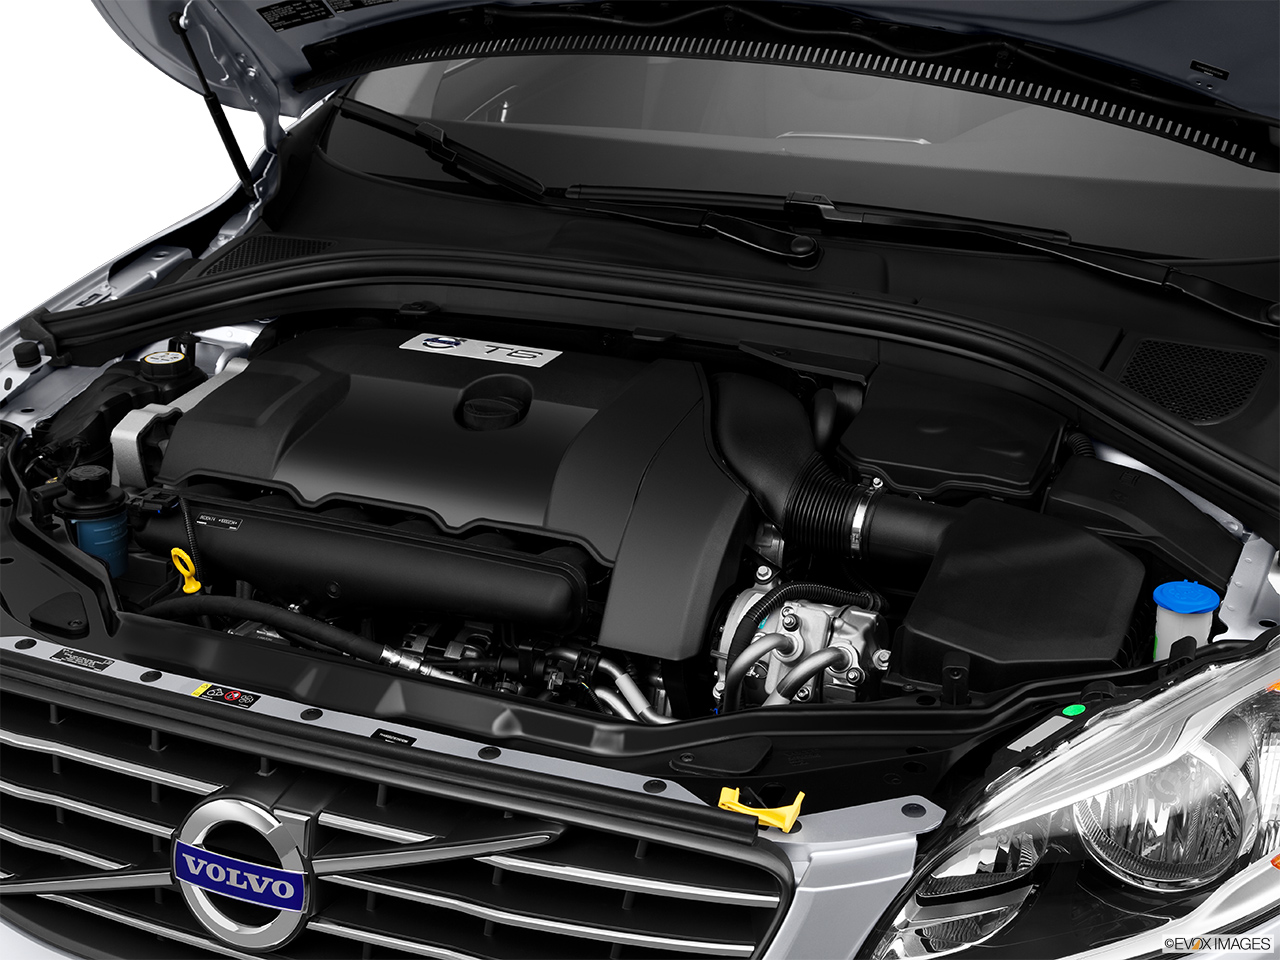 2014 Volvo XC60 T6 AWD Premier Plus Engine.